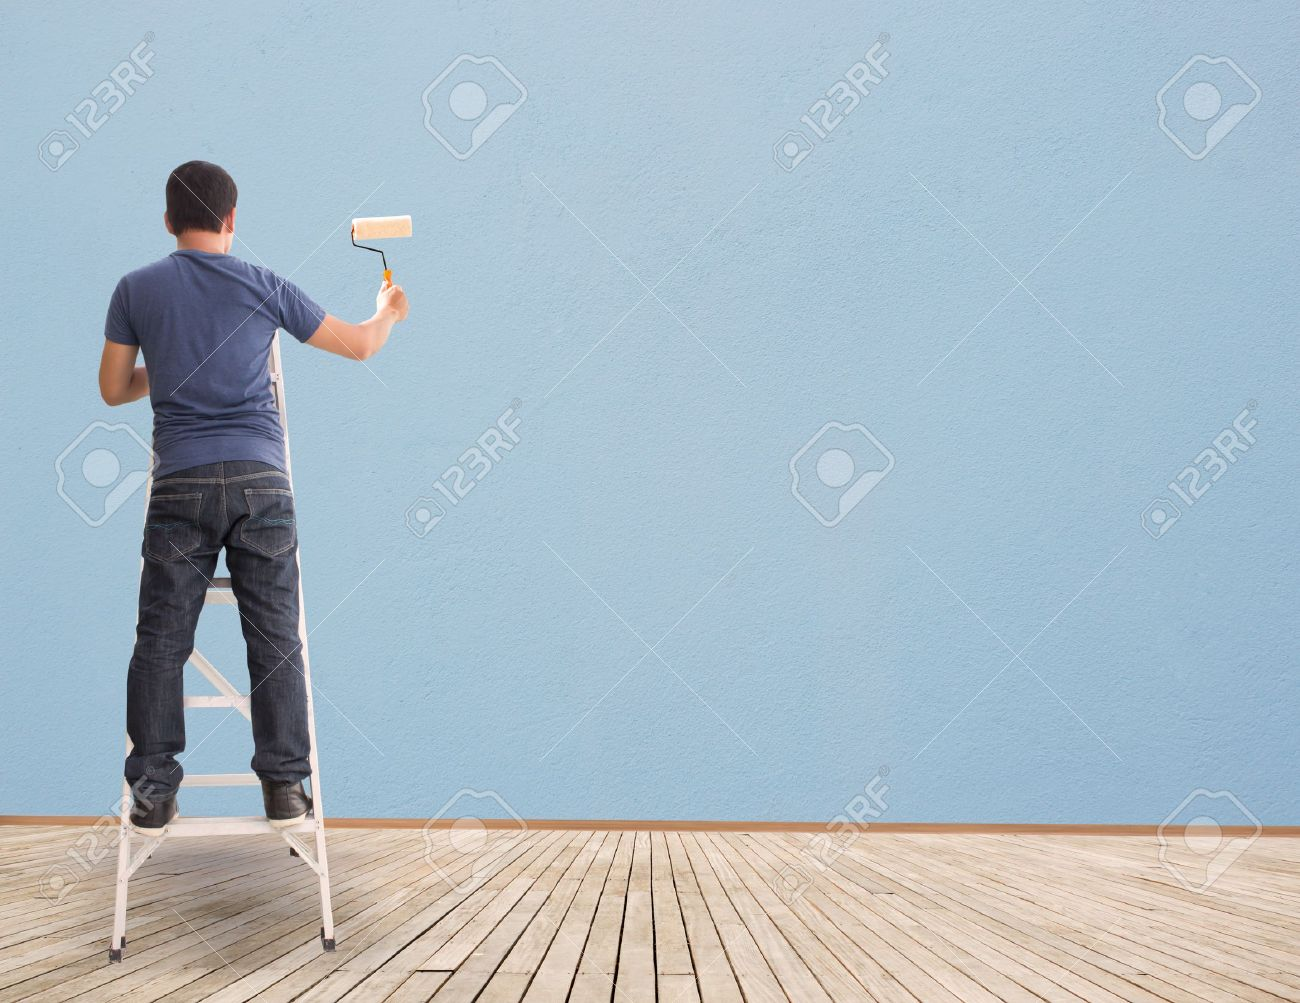 Man Painting On Blue Wall,Concept And Ideas Stock Photo - 19387512